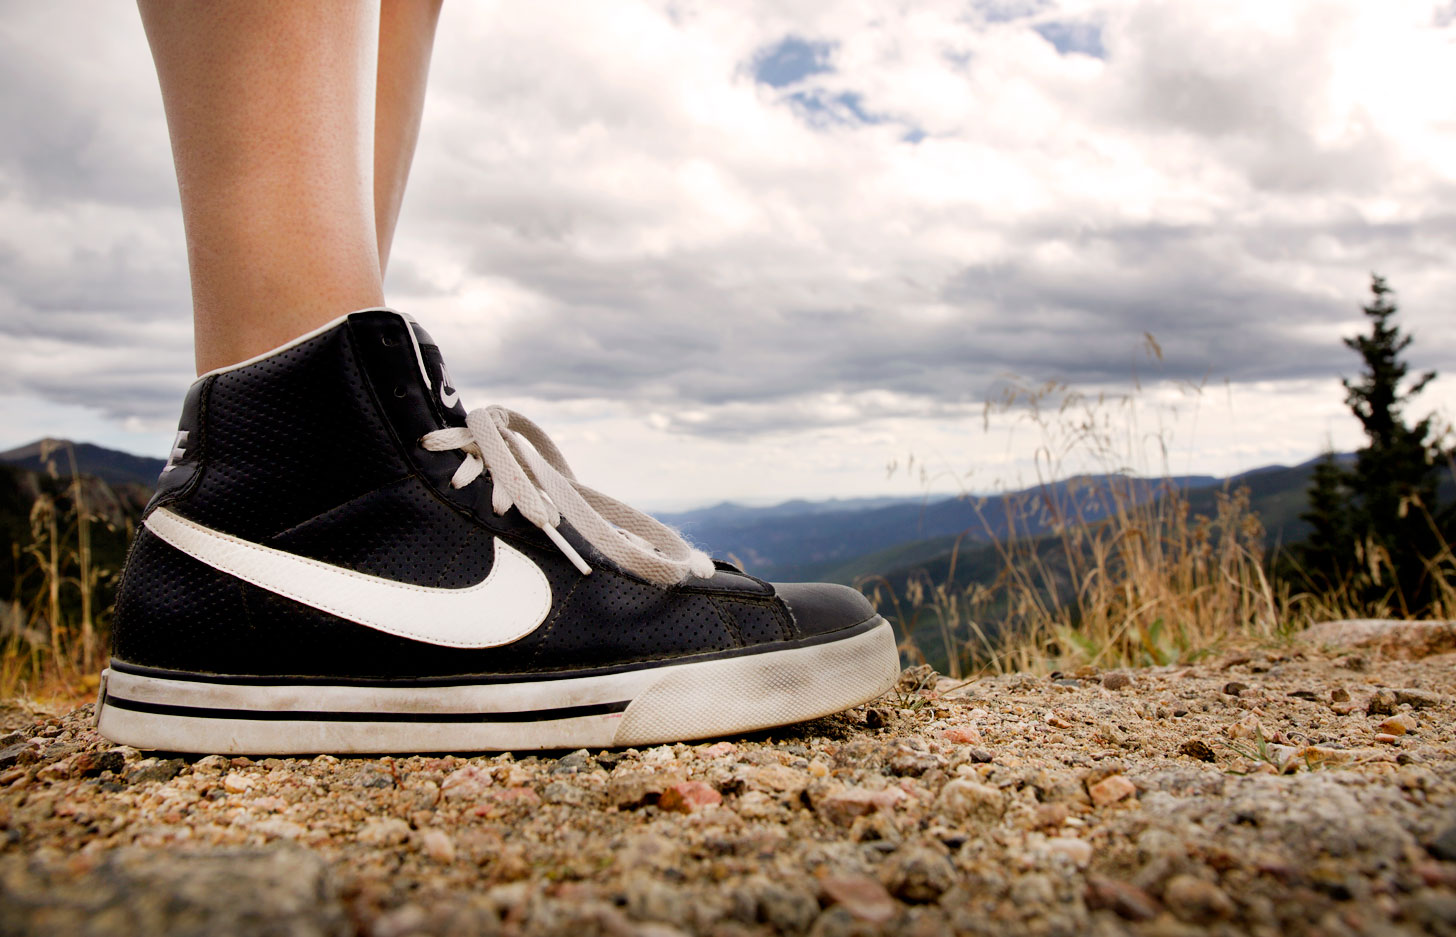 Chief Mountain / for the love of nike